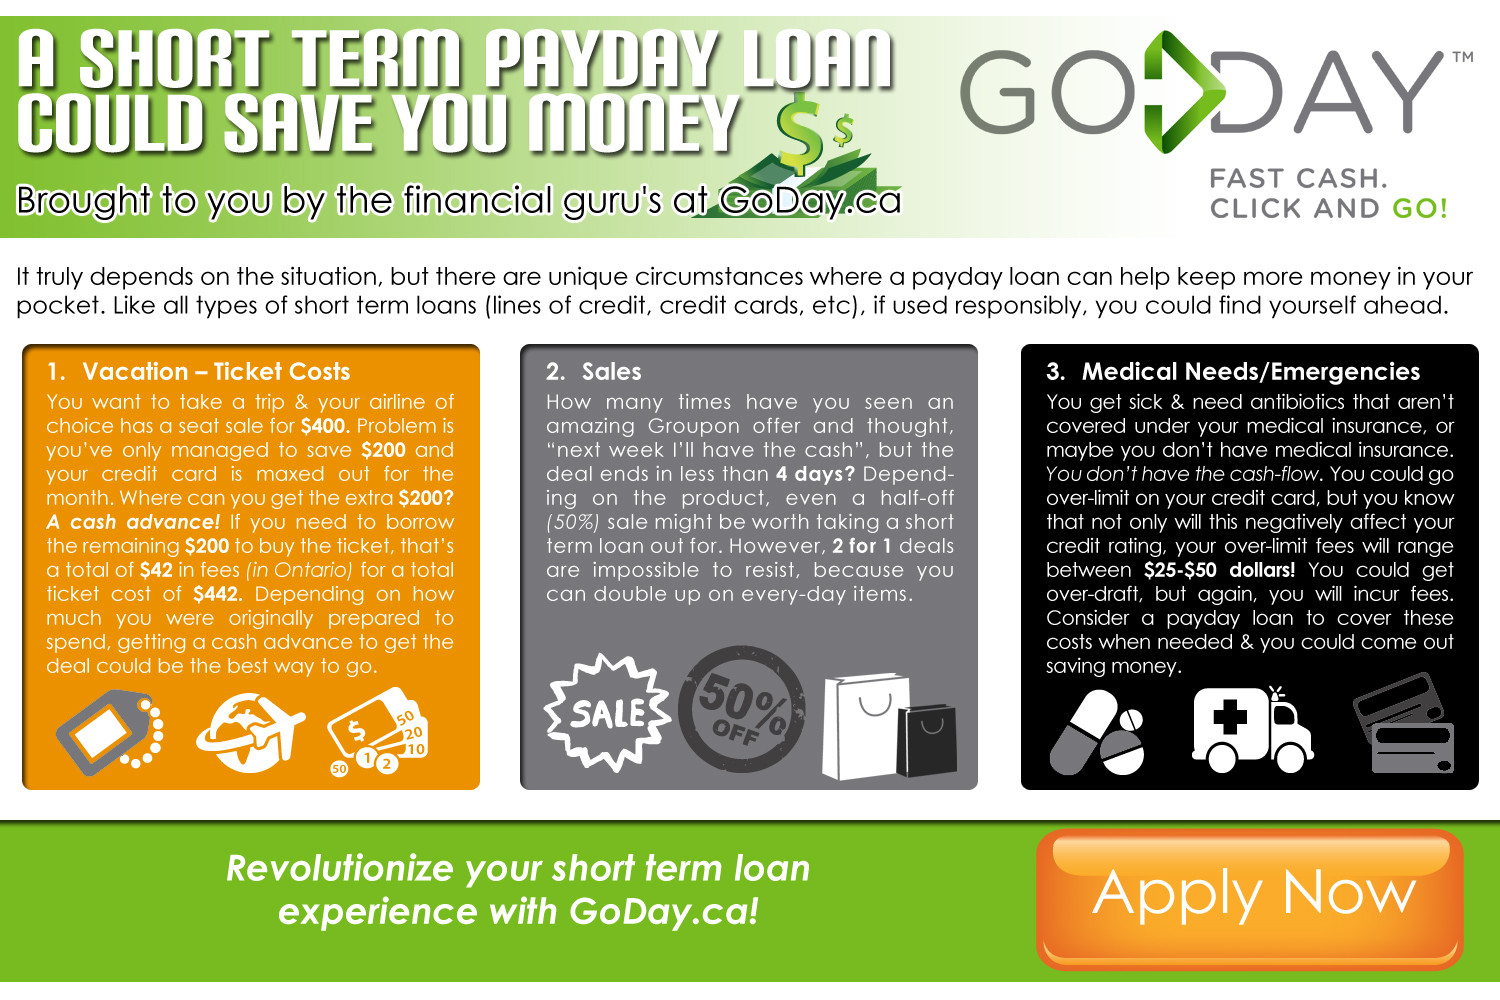 How a Payday Loan Could Save You Money Infographic